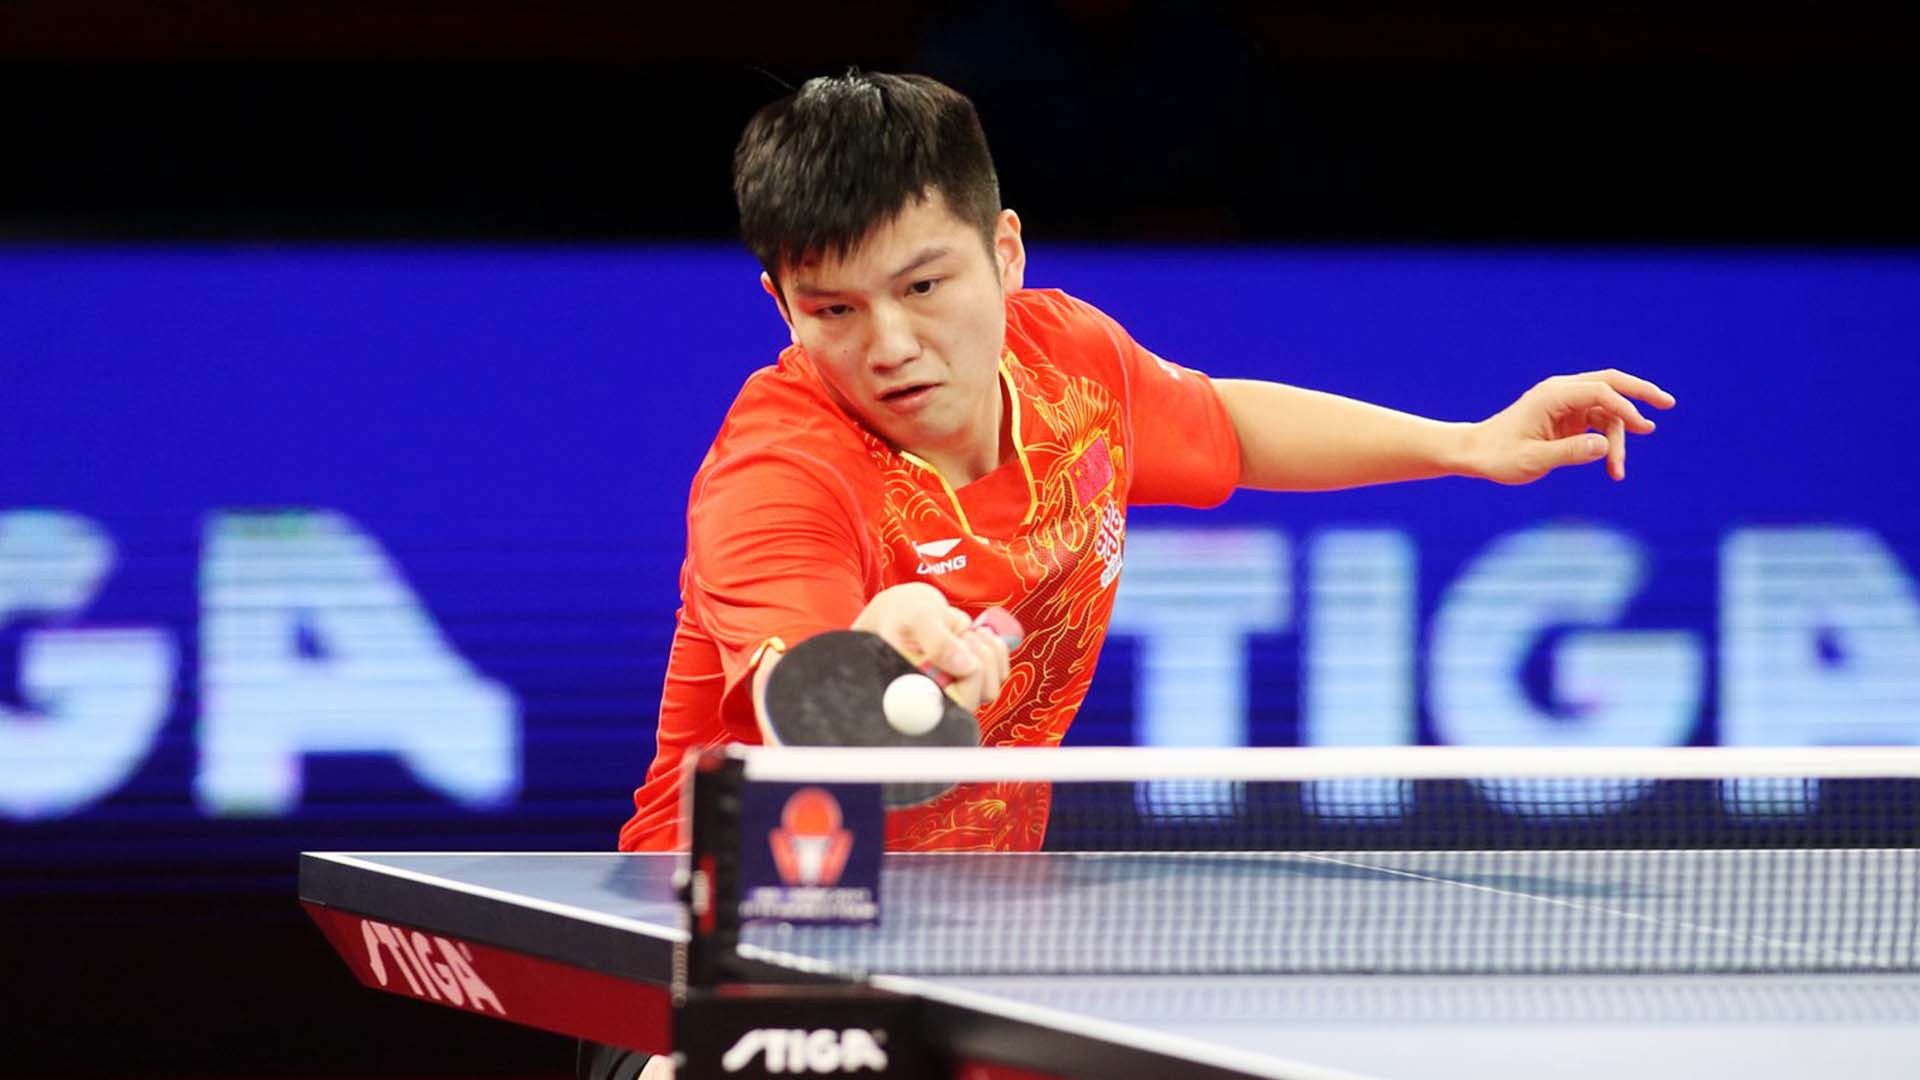 China's top seed Fan Zhedong will play compatriot and number two seed Xu Xin in tomorrow's men's singles final at the ITTF Swedish Open ©ITTF